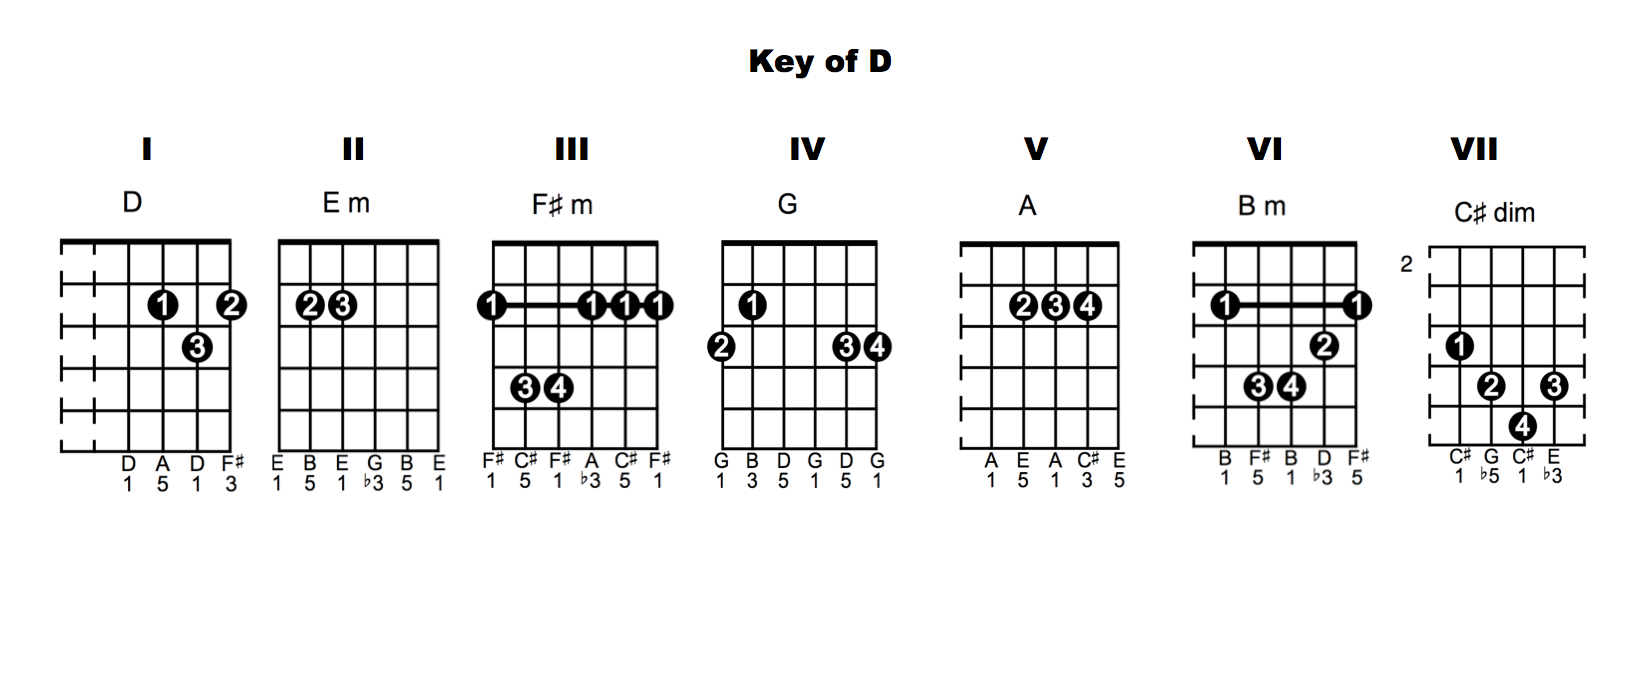 Key of D Chords - My Guitar Teacher : My Guitar Teacher